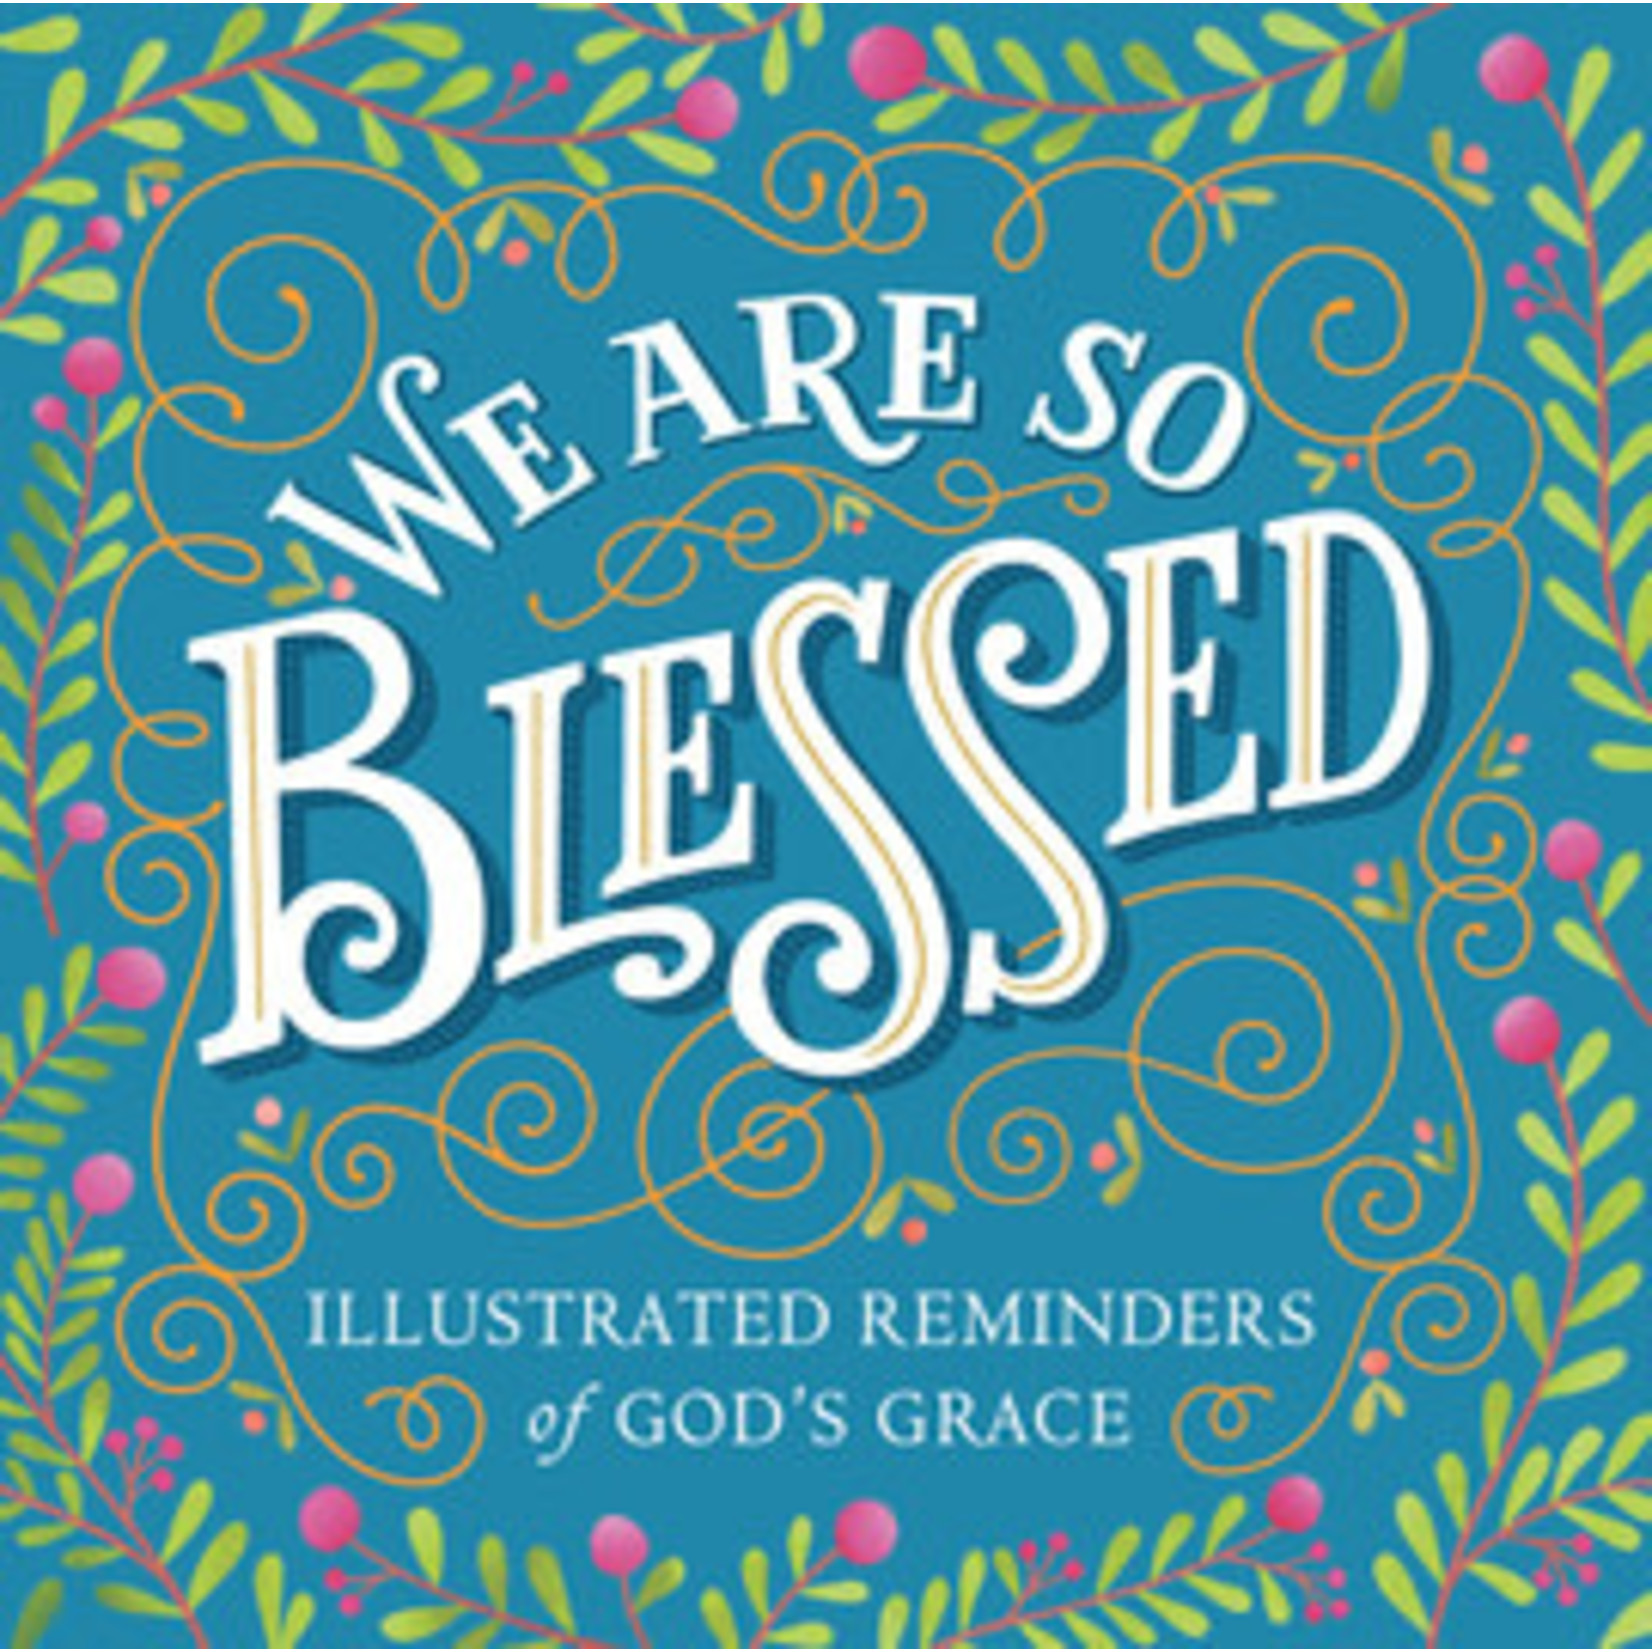 WE ARE SO BLESSED BOOK